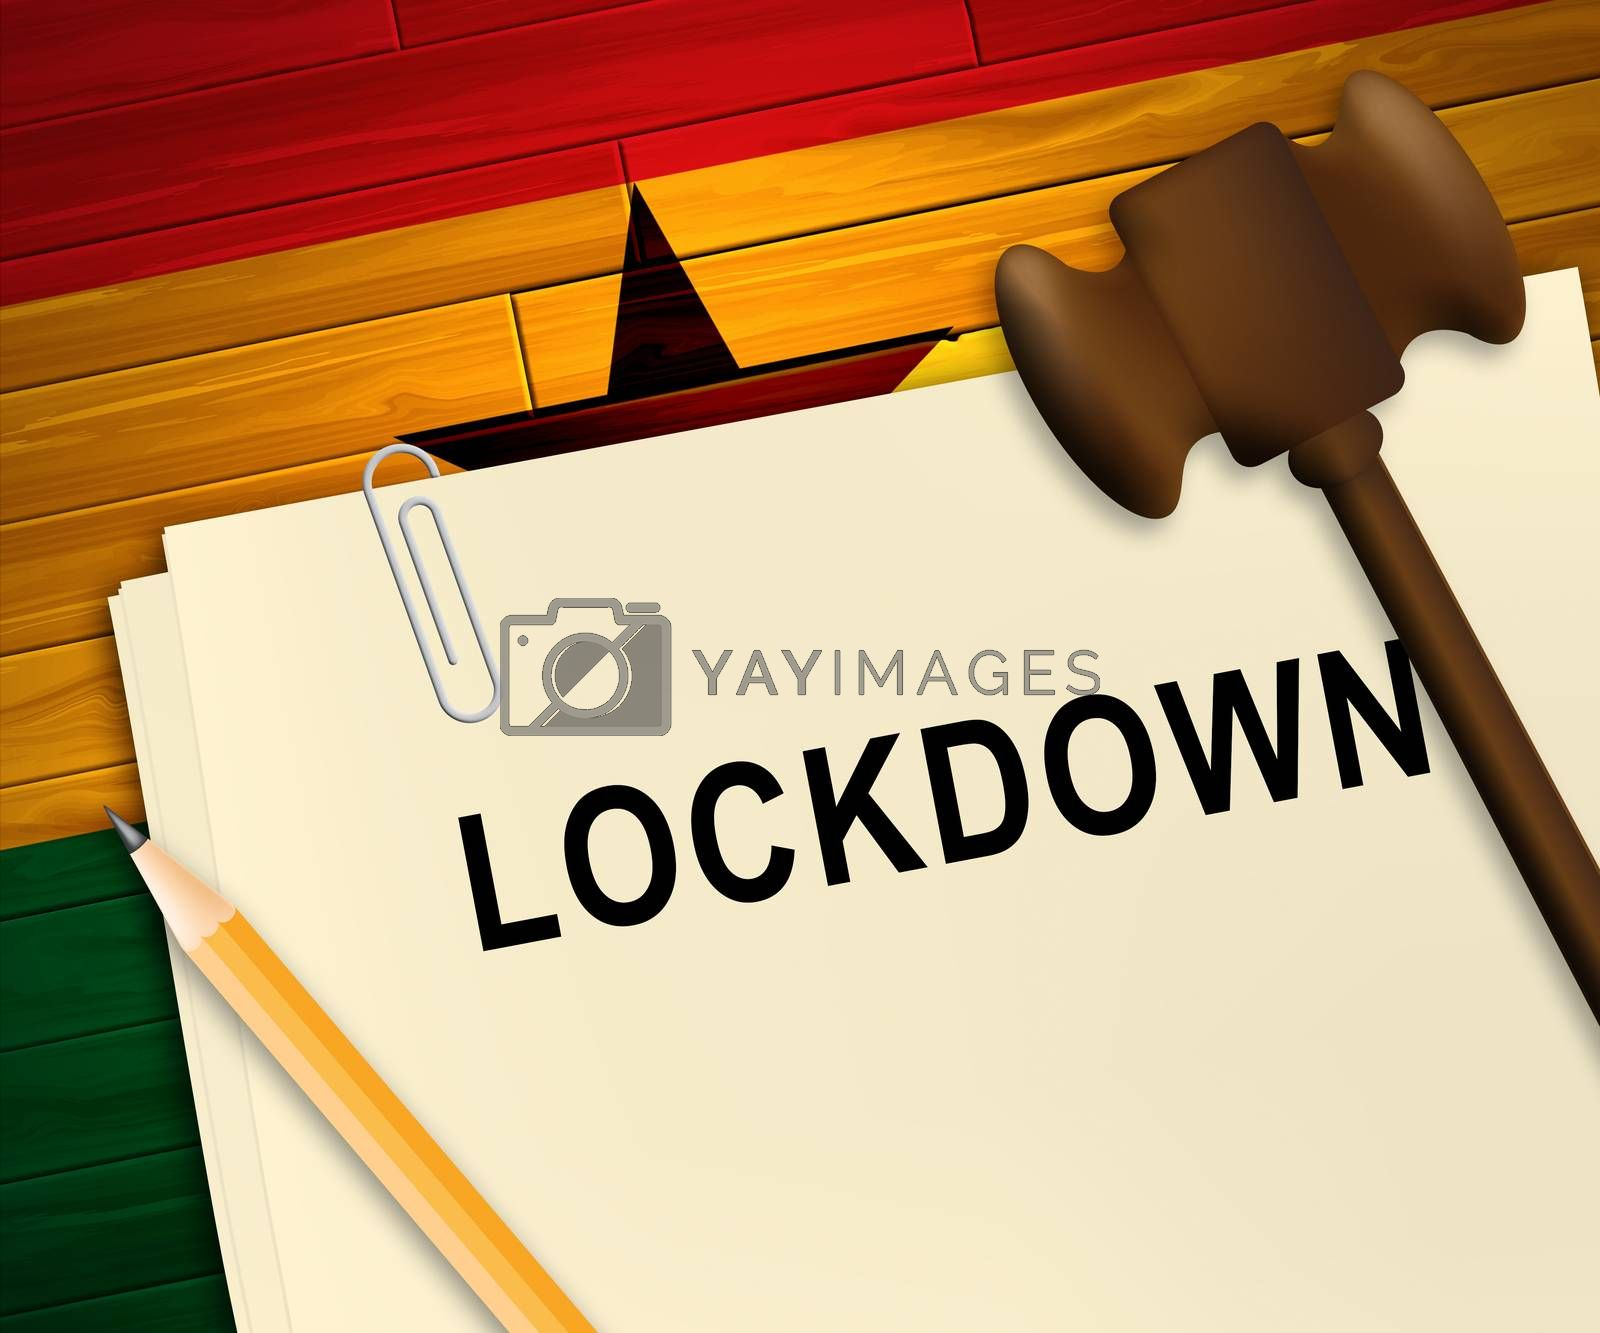 Ghana lockdown against coronavirus covid-19. Stay home order to enforce self isolation and stop infection - 3d Illustration